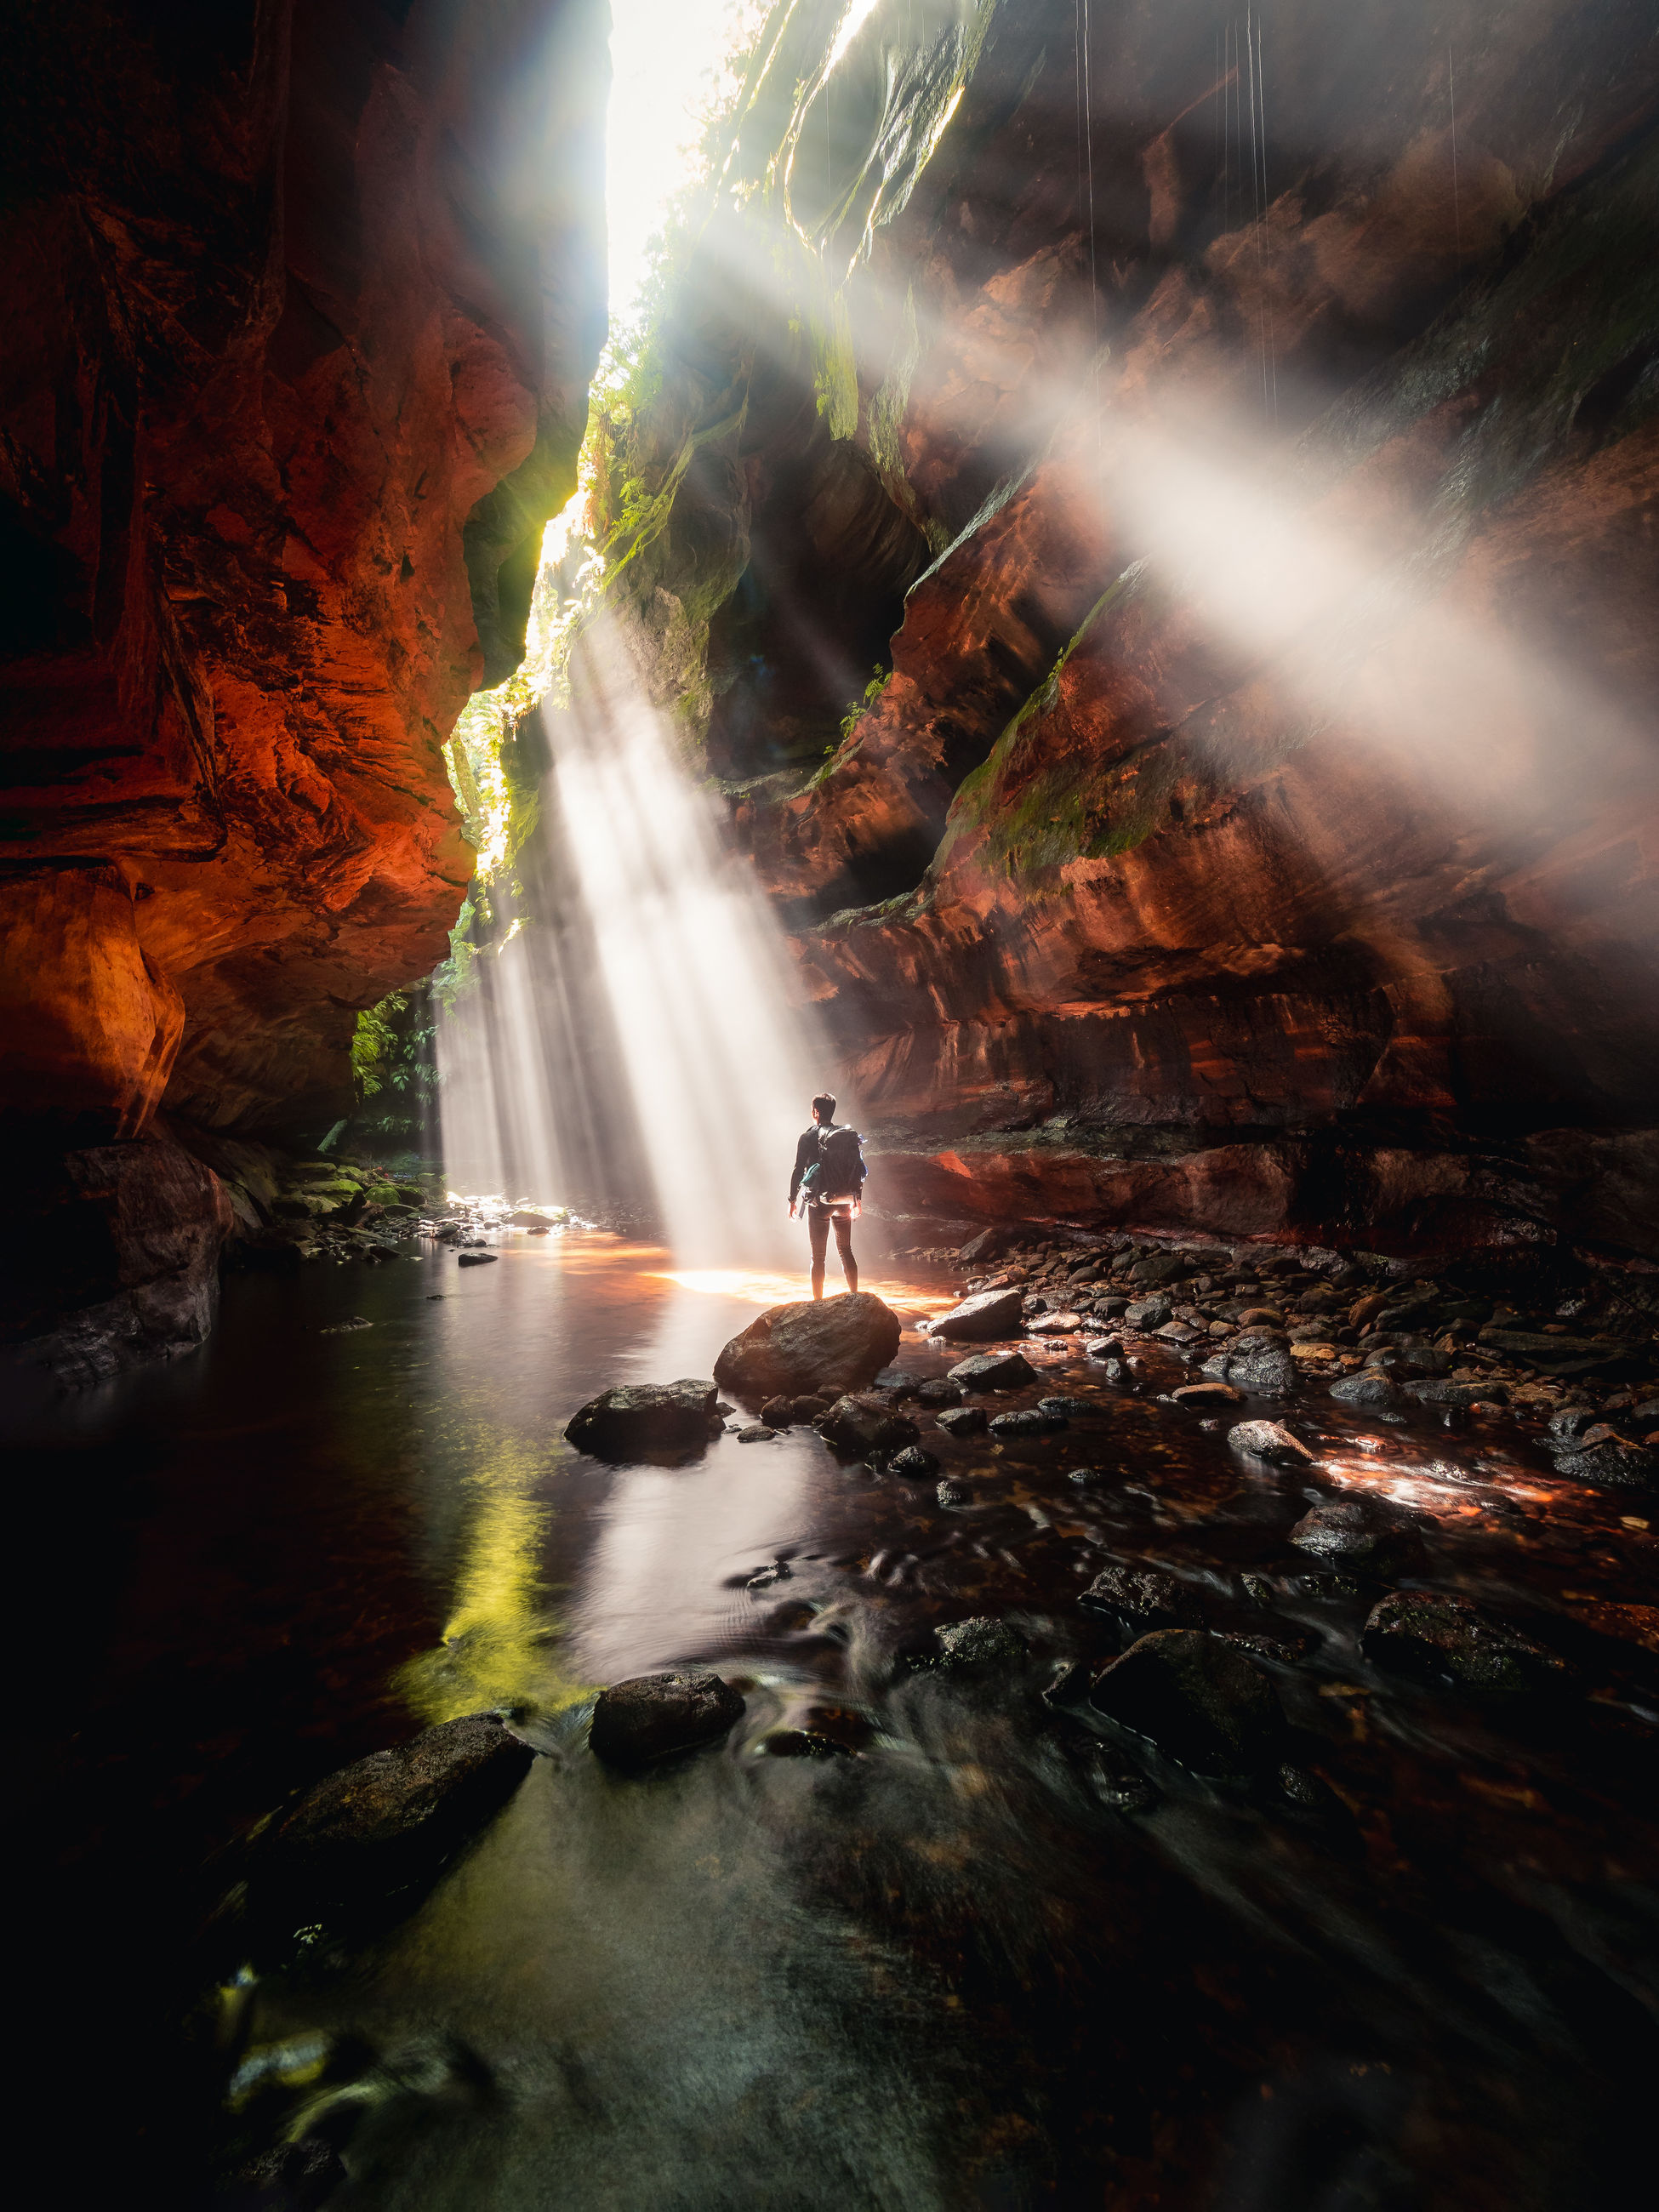 water, waterfall, motion, nature, scenics - nature, one person, rock - object, rock, long exposure, solid, beauty in nature, flowing water, real people, day, forest, rock formation, outdoors, leisure activity, flowing